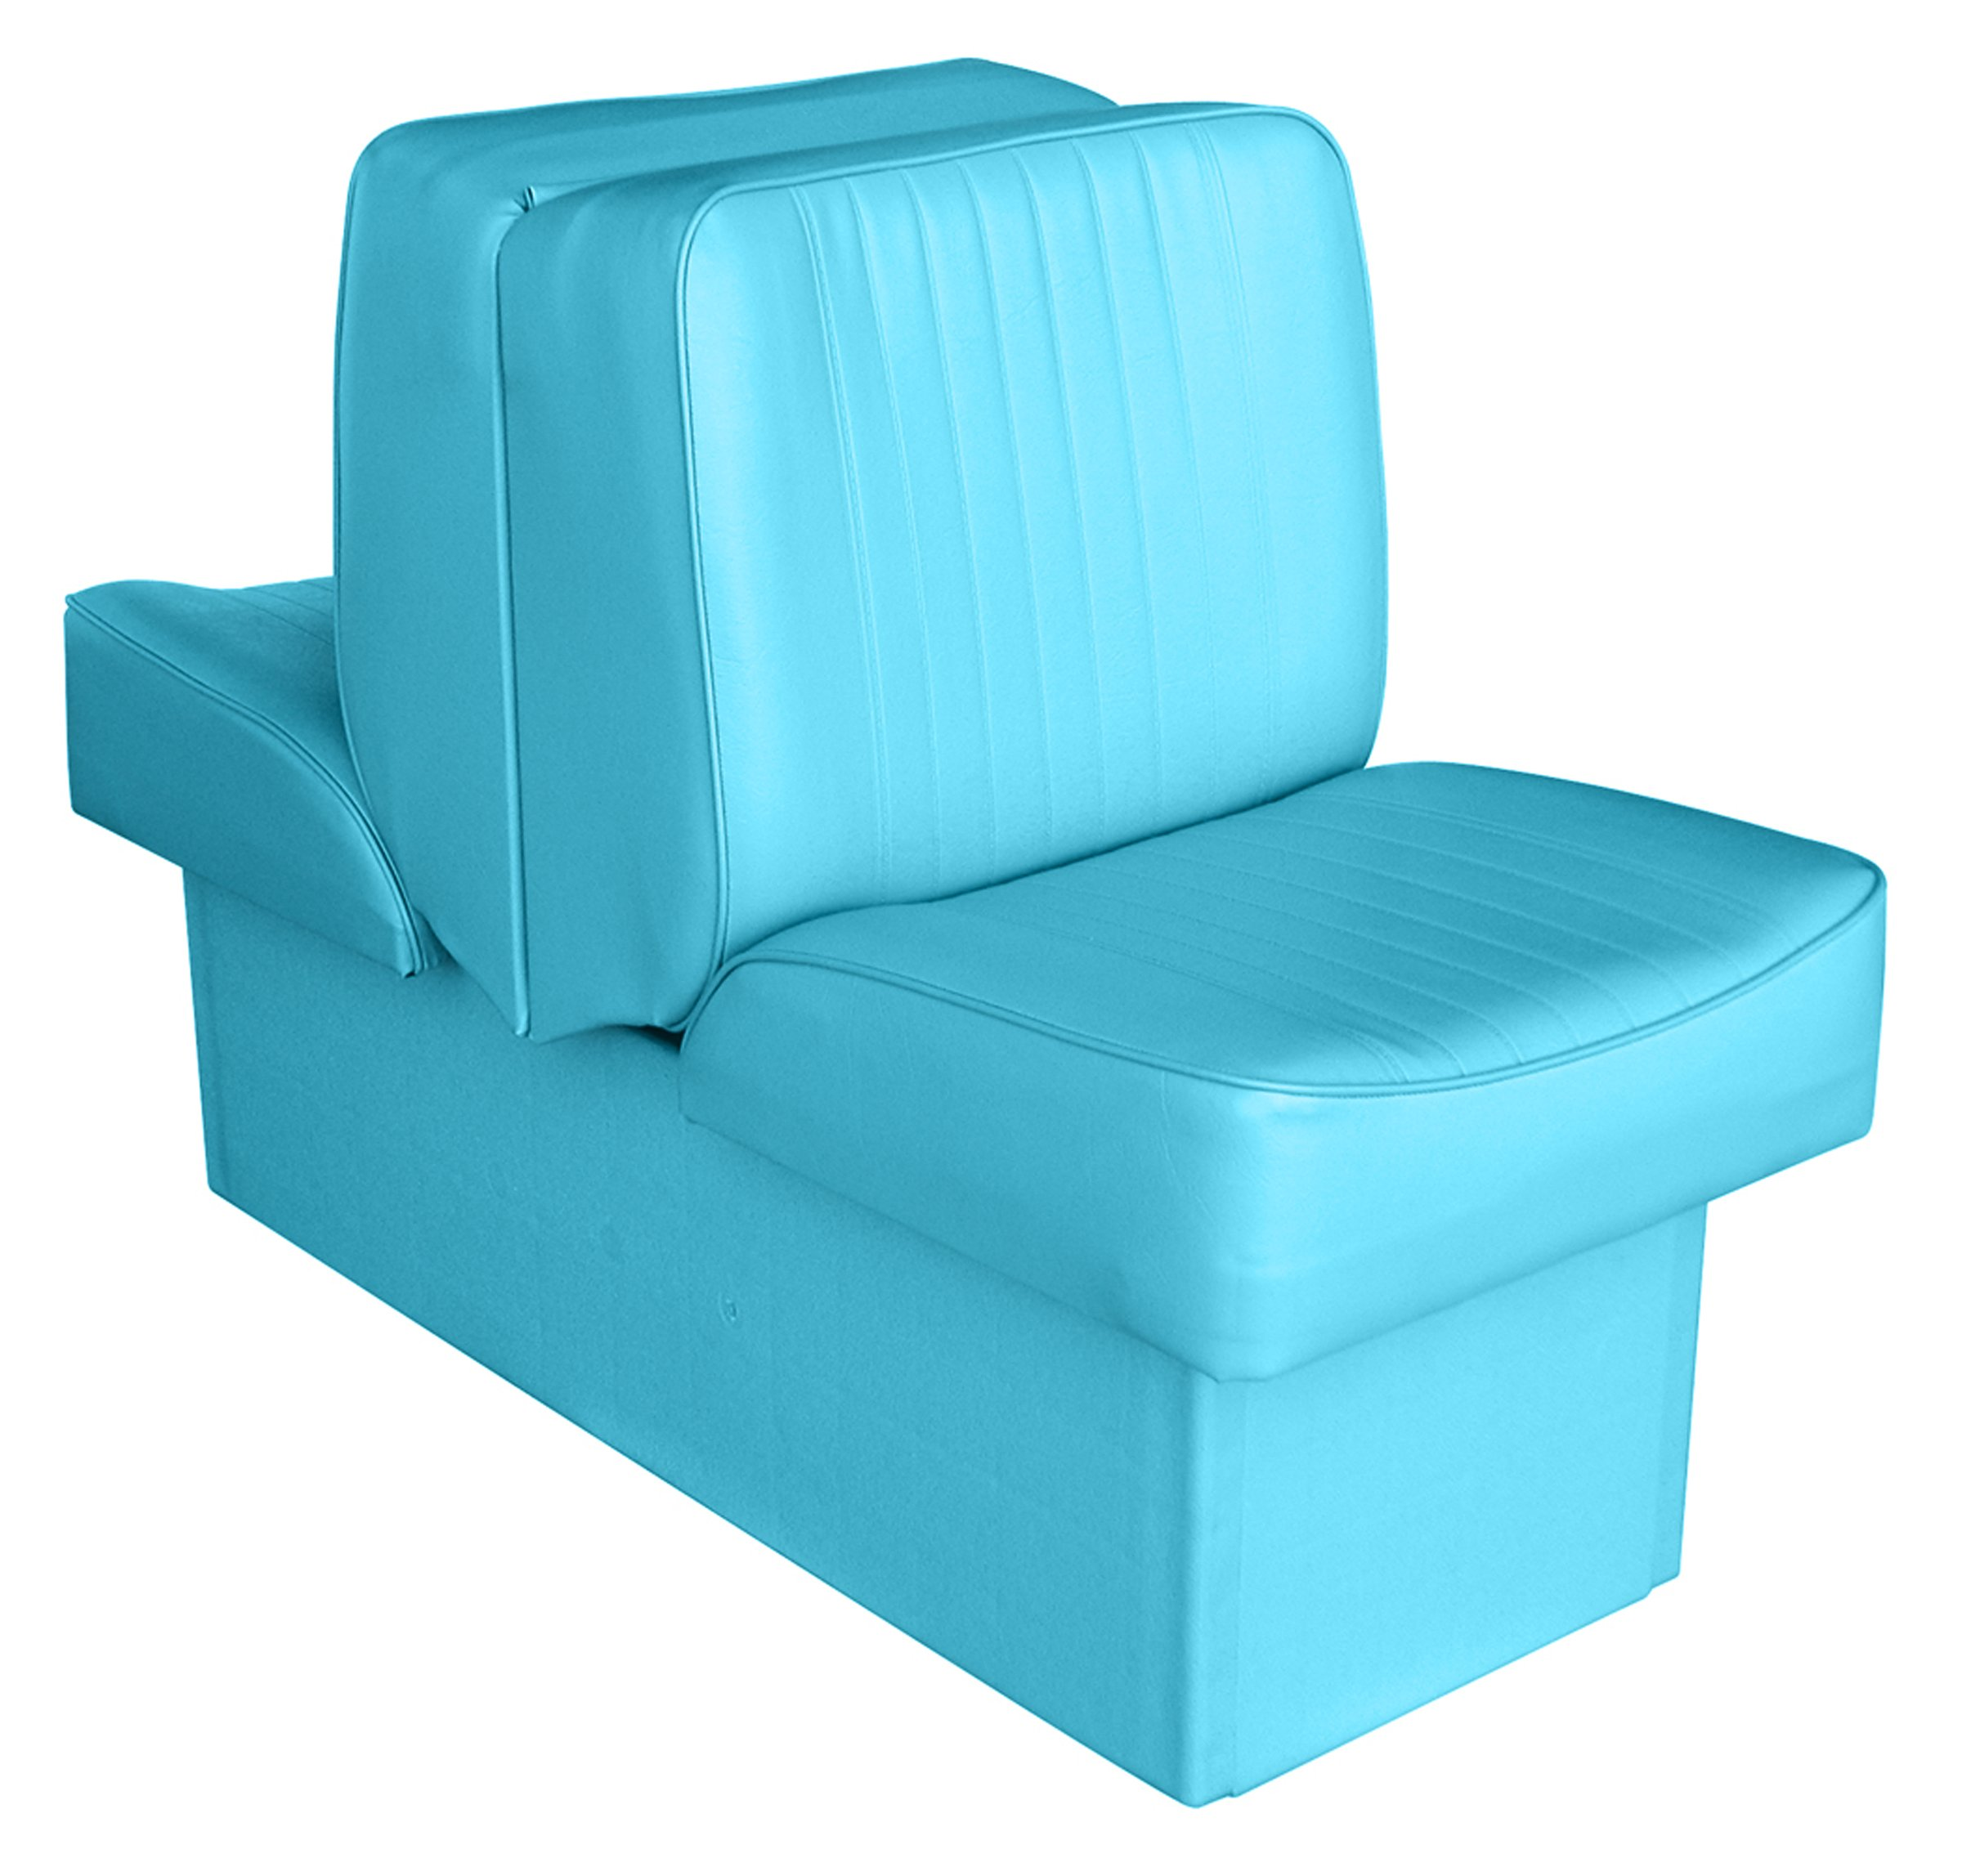 Wise 8WD707P-1-718 Deluxe Lounge Seat (Light Blue) by Wise (Image #1)